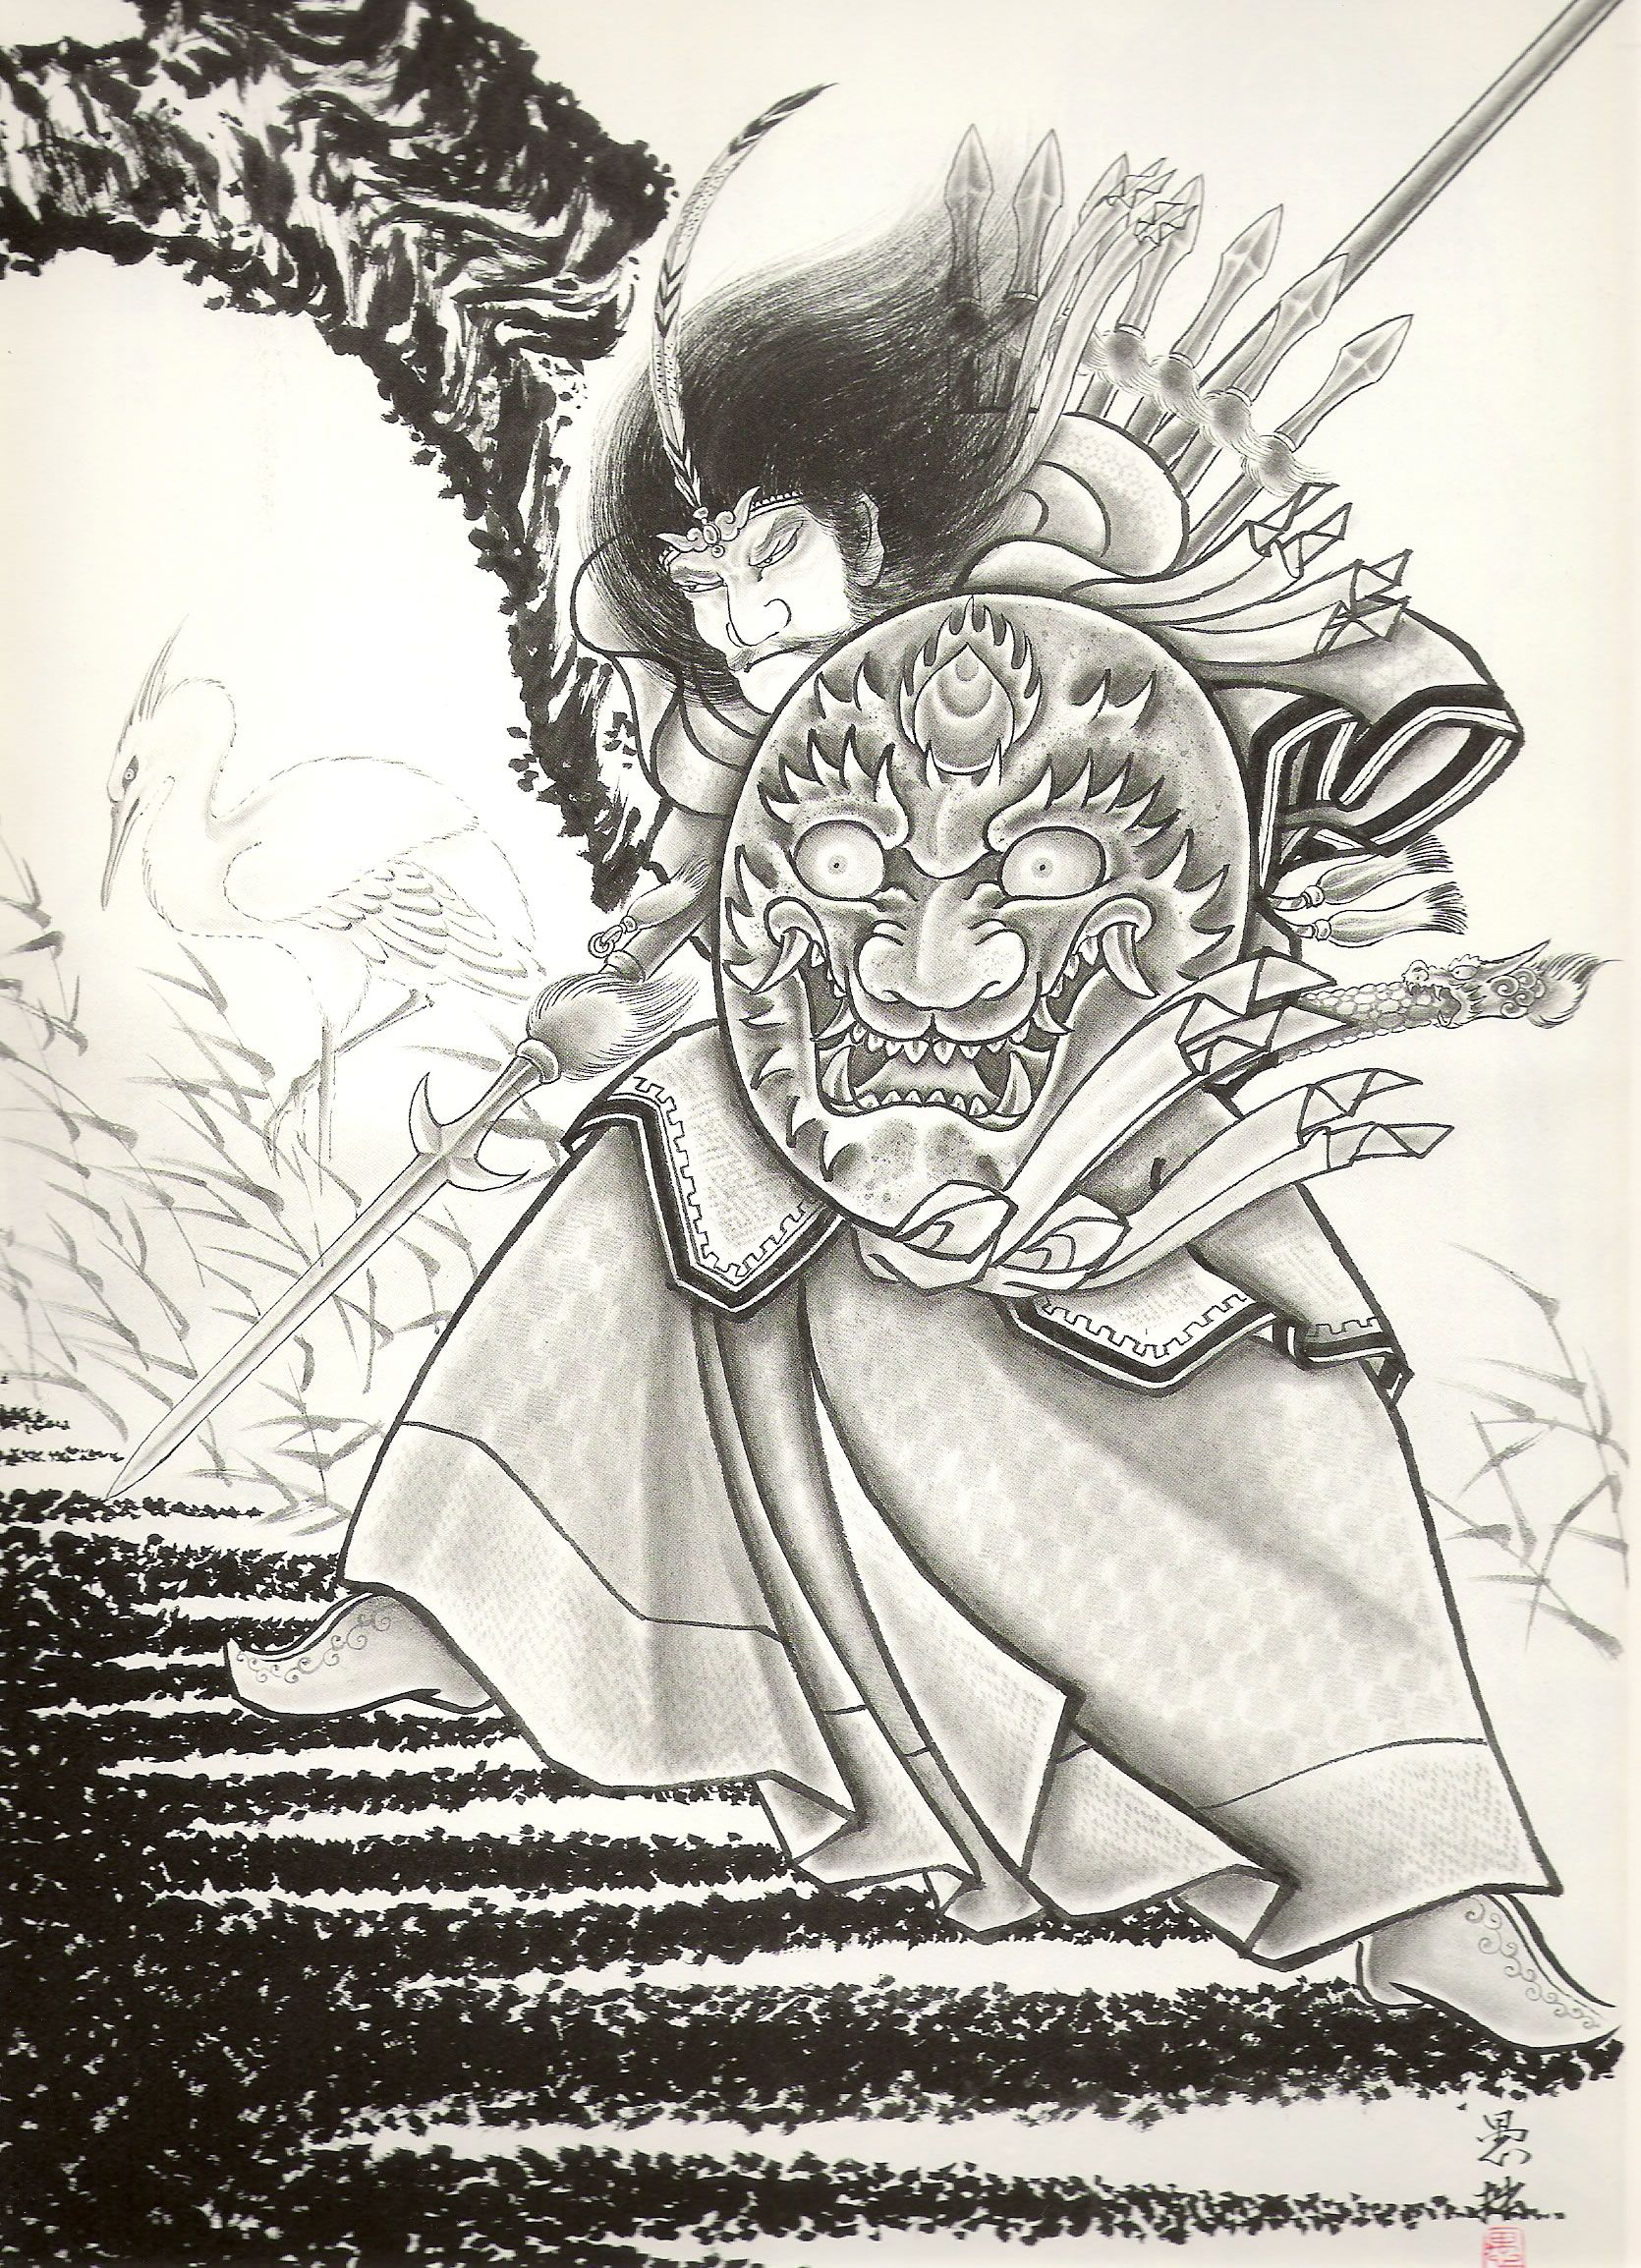 Pin By Larry Butler On 108 Heroes Traditional Japanese Tattoos Japanese Tattoo Japanese Illustration